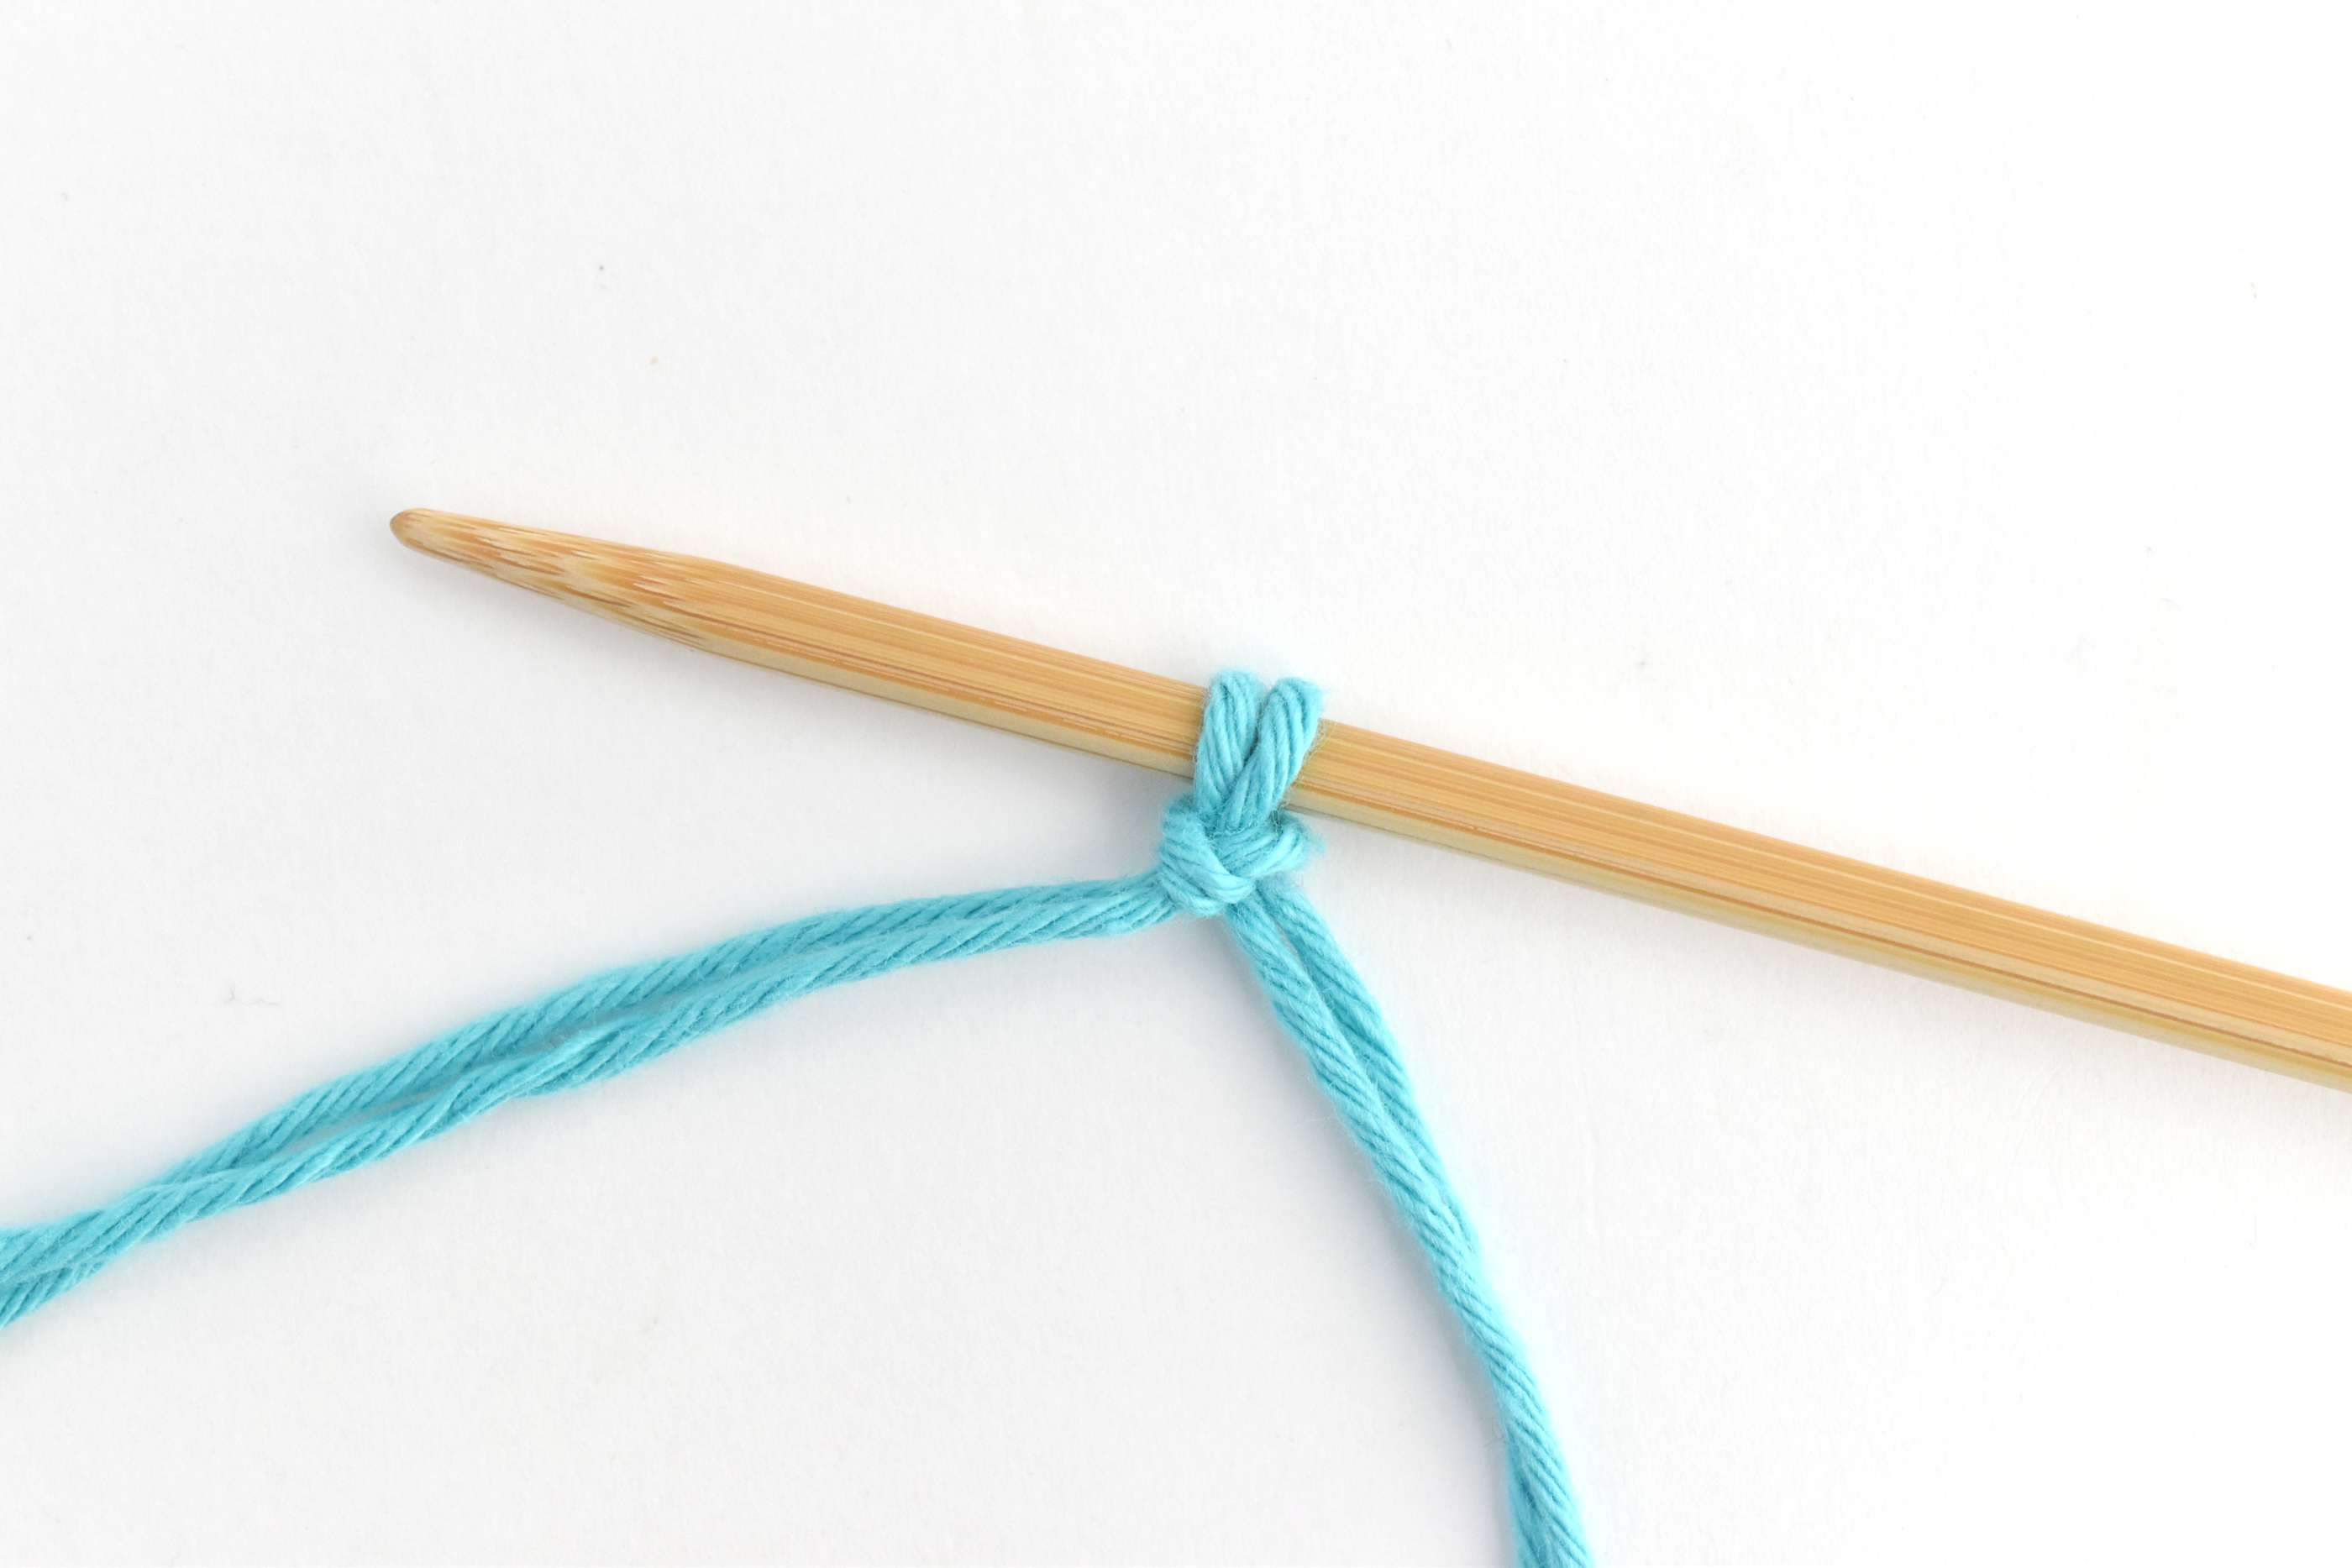 Place the Slip Knot on Your Knitting Needle